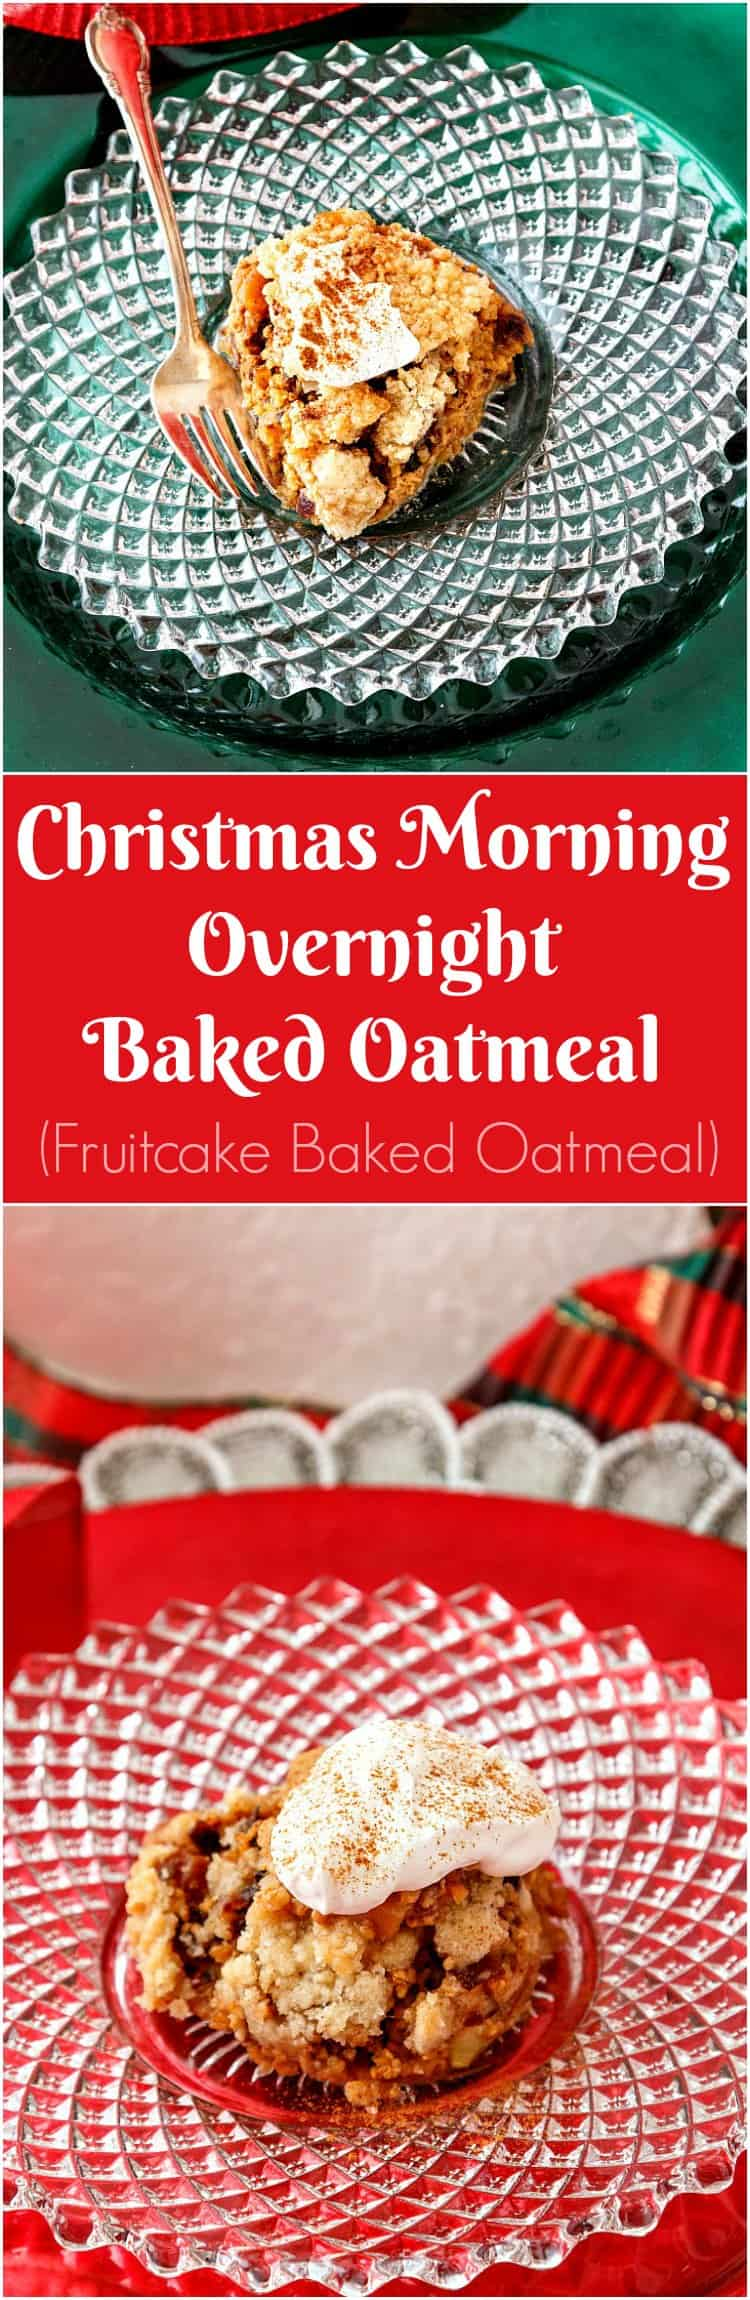 These Overnight Fruitcake Baked Steel Cut Oats are flavored with the same spices The Beloved uses in his fruitcake. Same mix of dried fruits, too. An easy, warming, make-ahead Christmas morning breakfast! | pastrychefonline.com